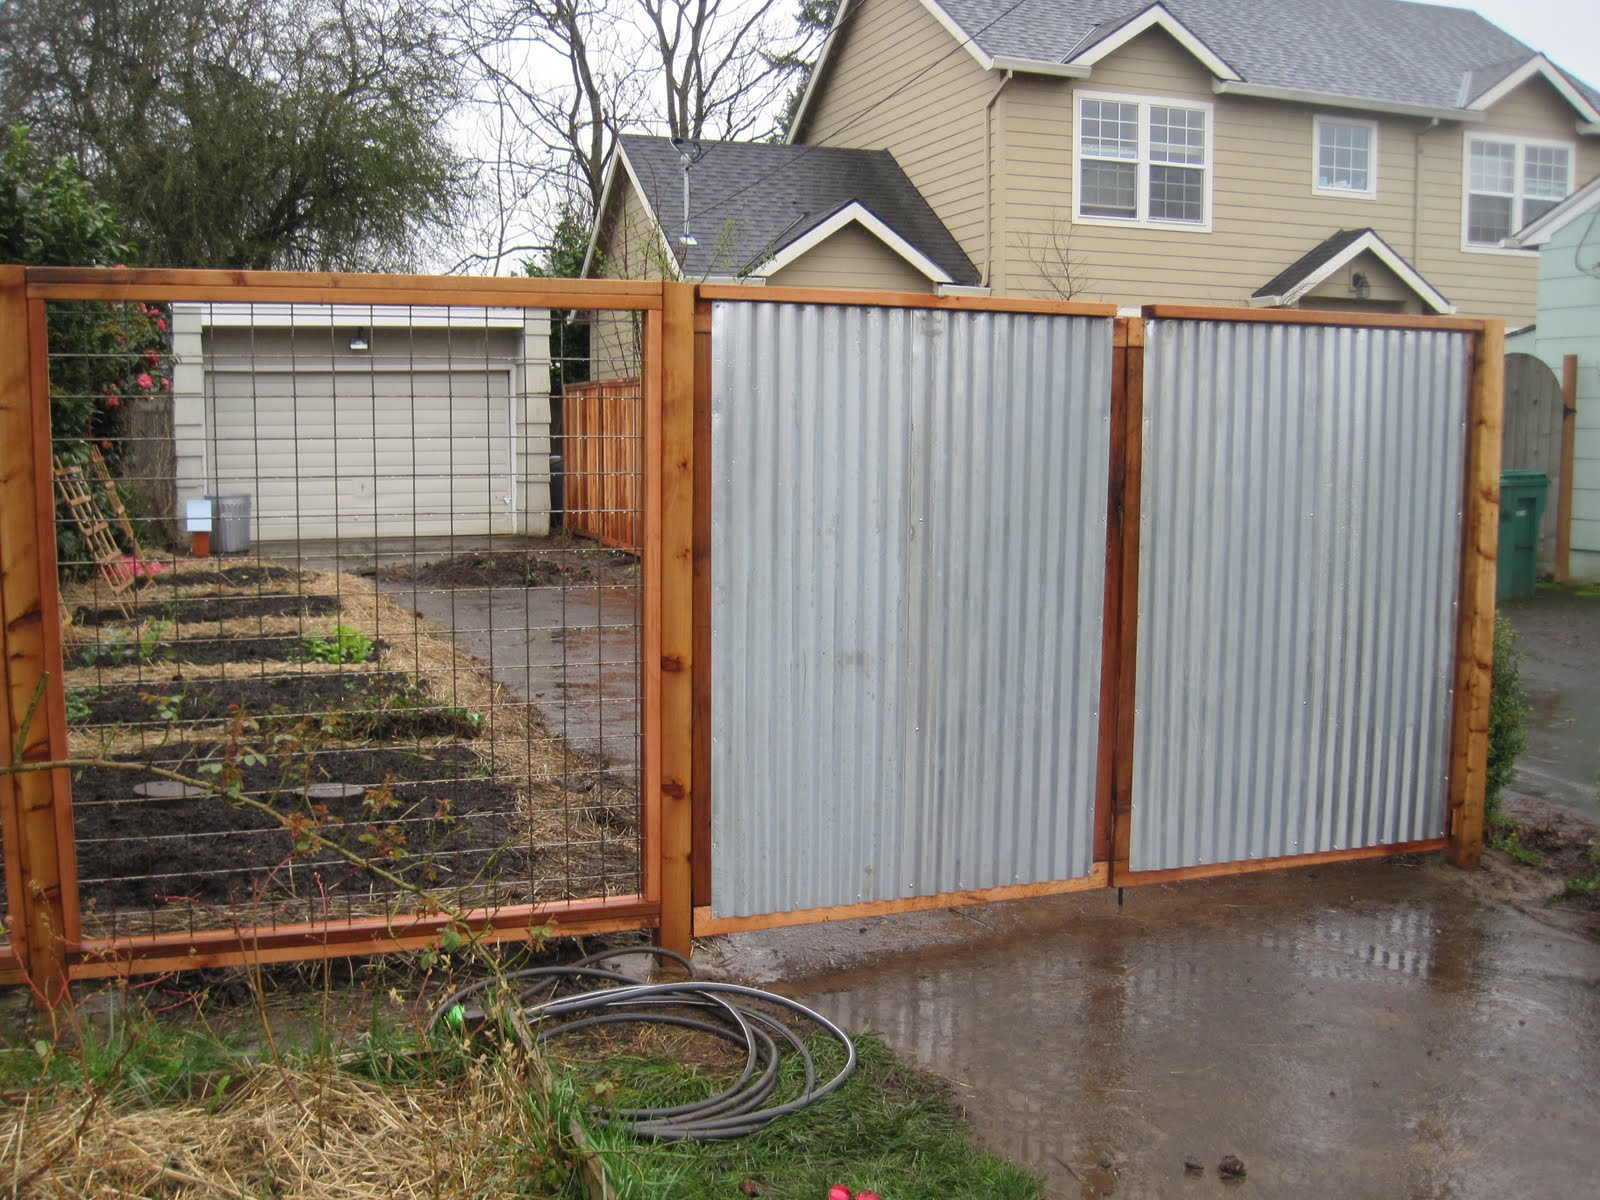 Steel Fence Construction : Aristata land arts building fences in the rain